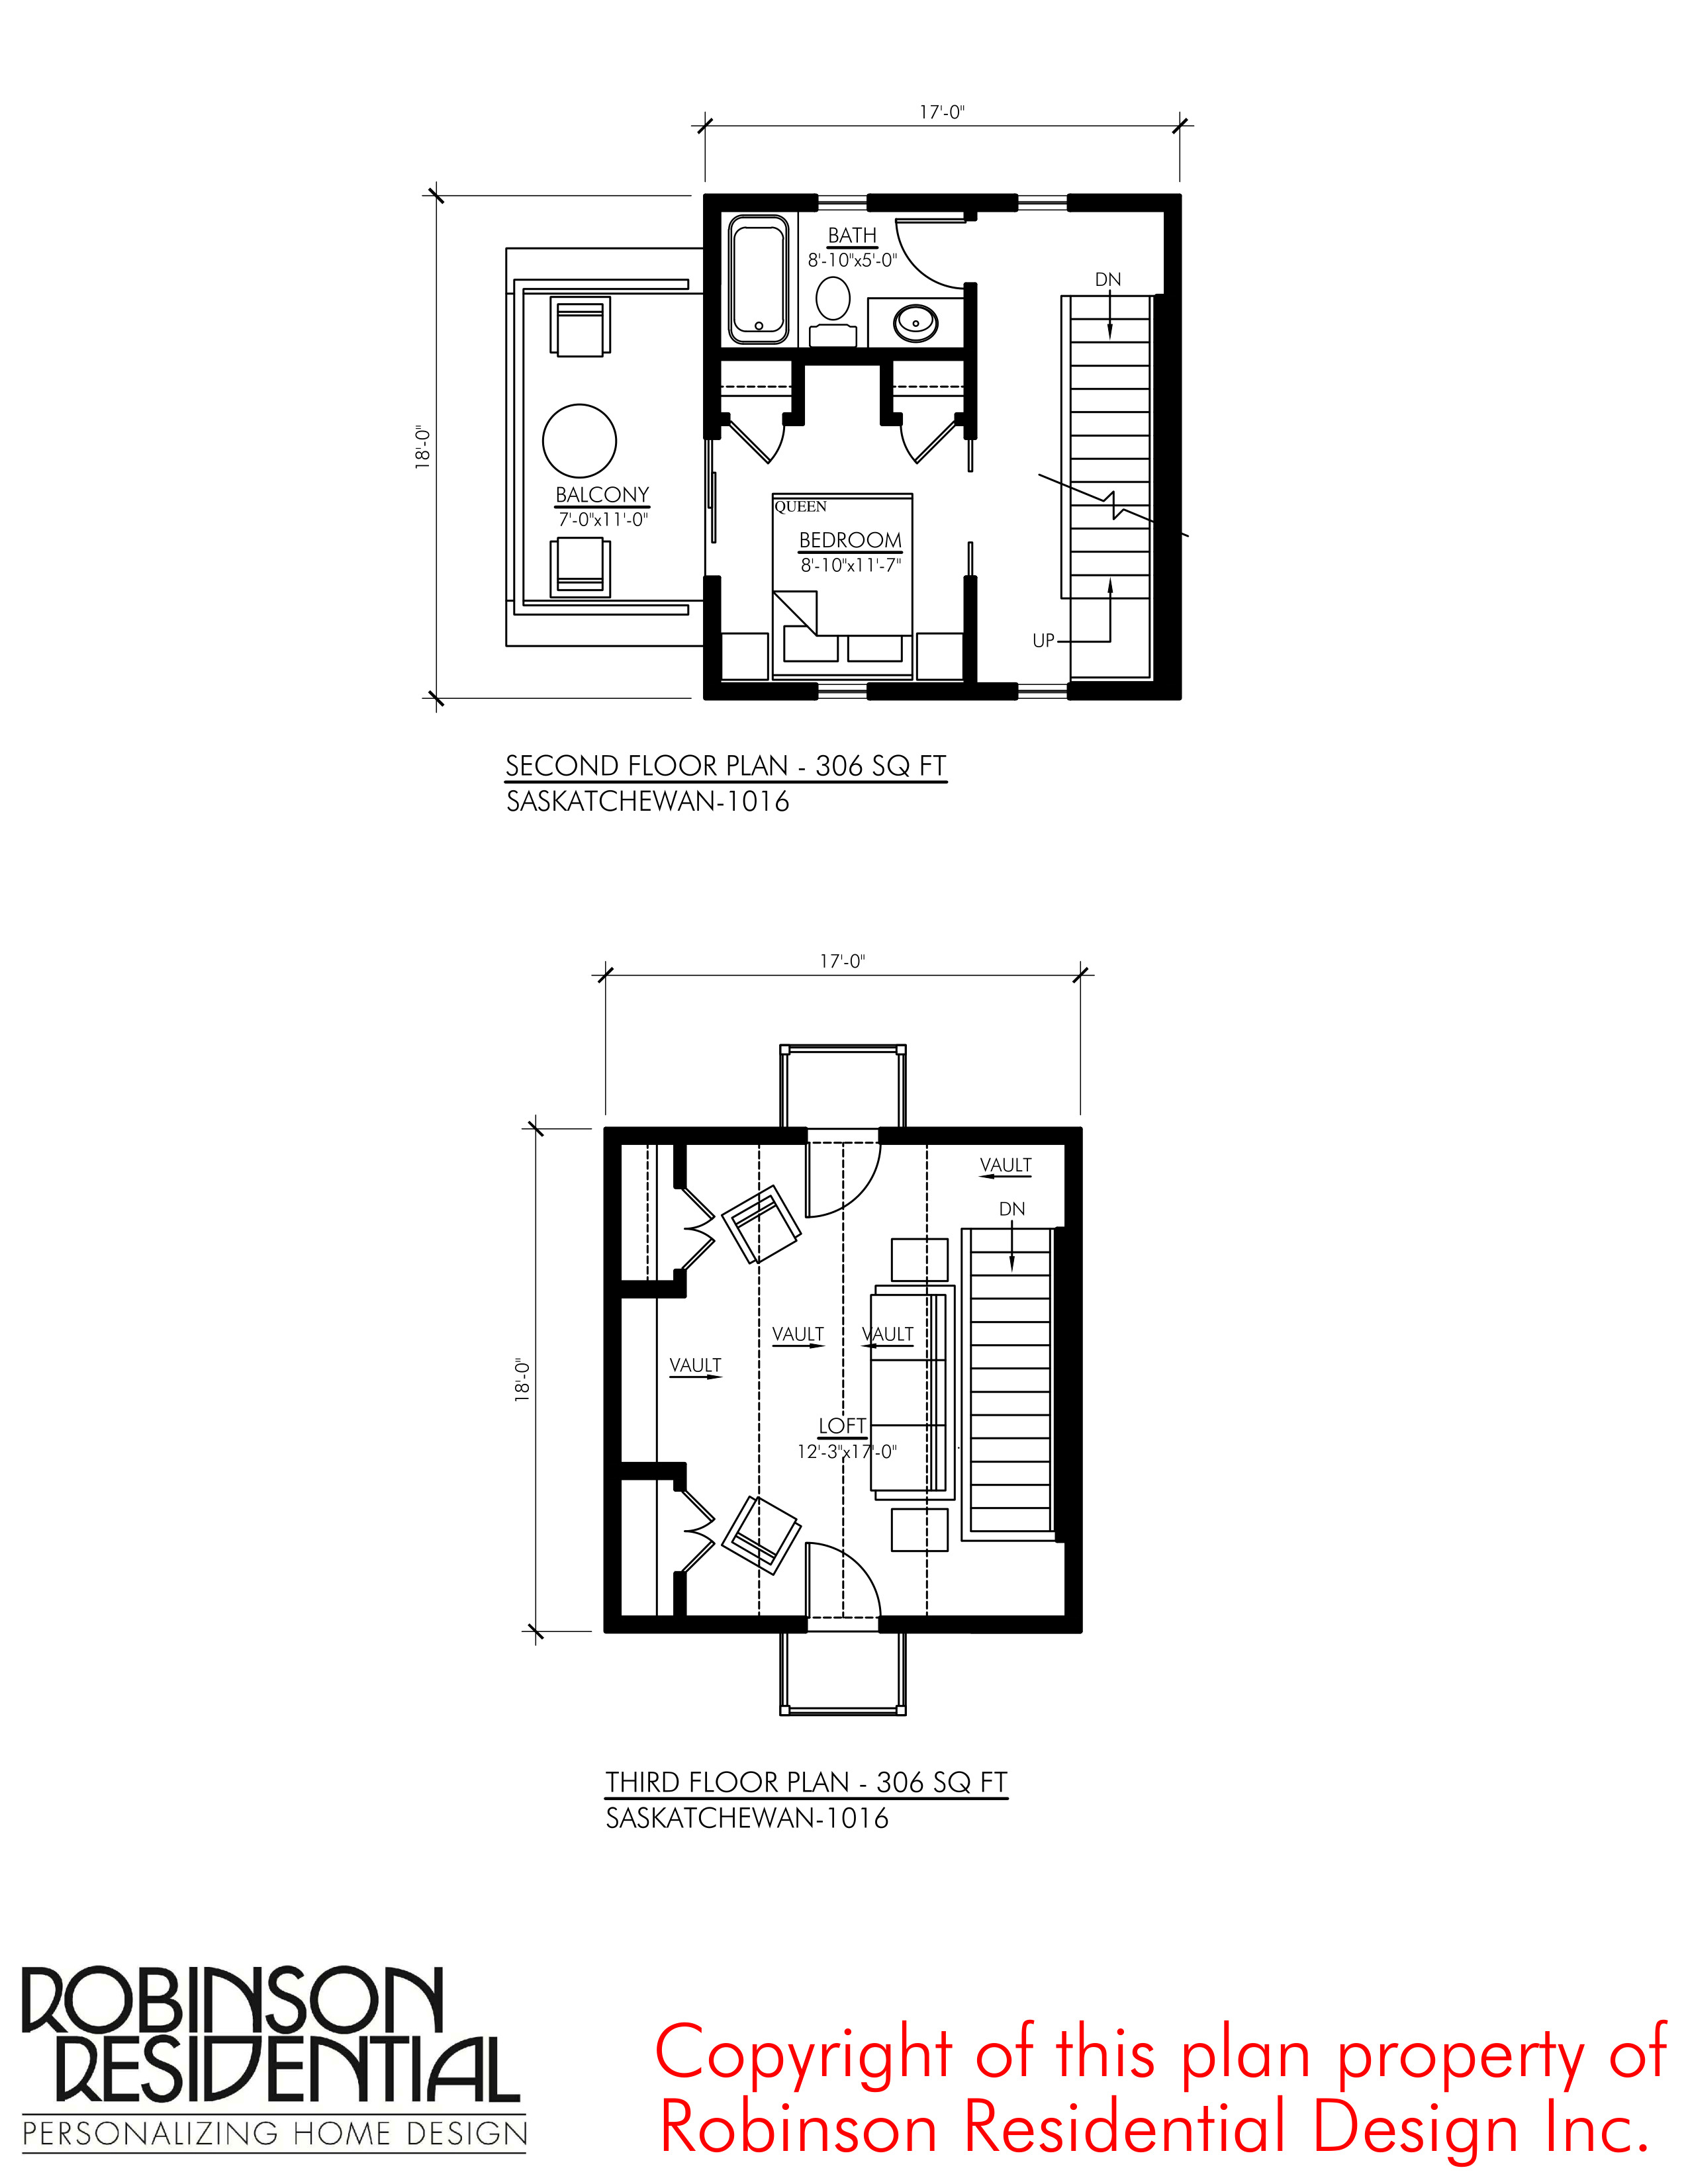 SMALL HOME PLANS SASKATCHEWAN 1016 02 SECOND THIRD FLOOR PLAN